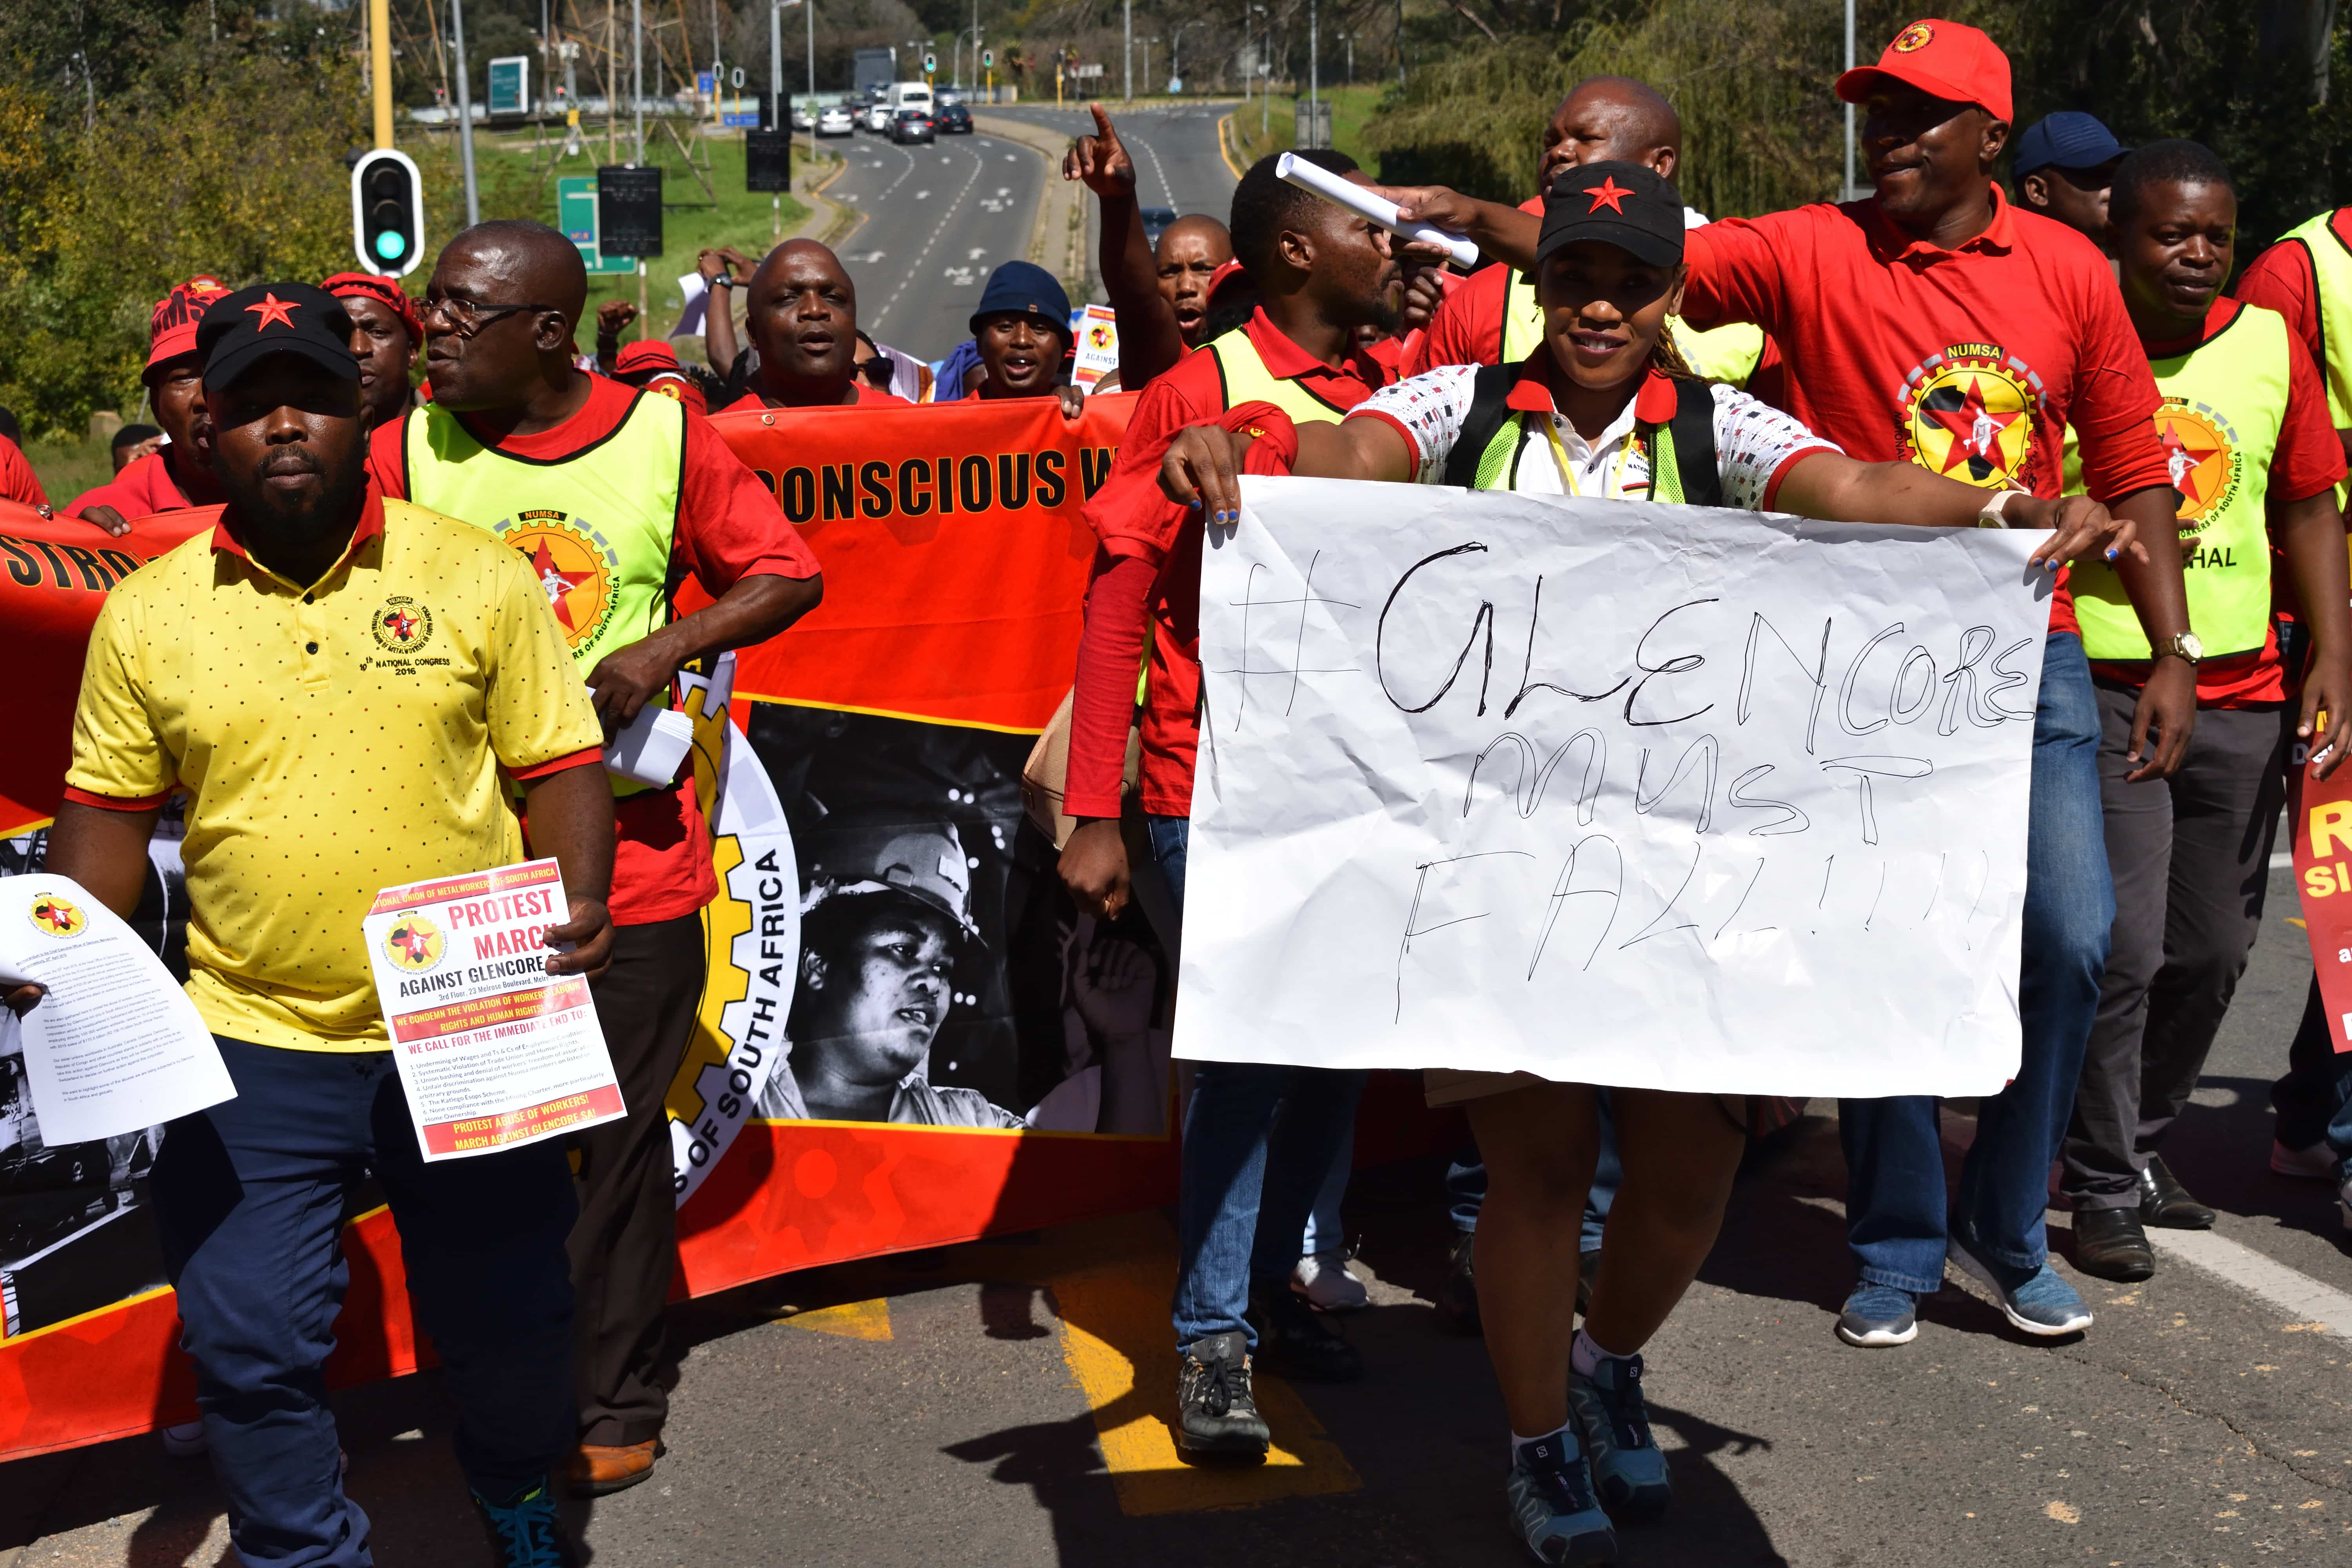 South Africa: Union protests Glencore malpractices